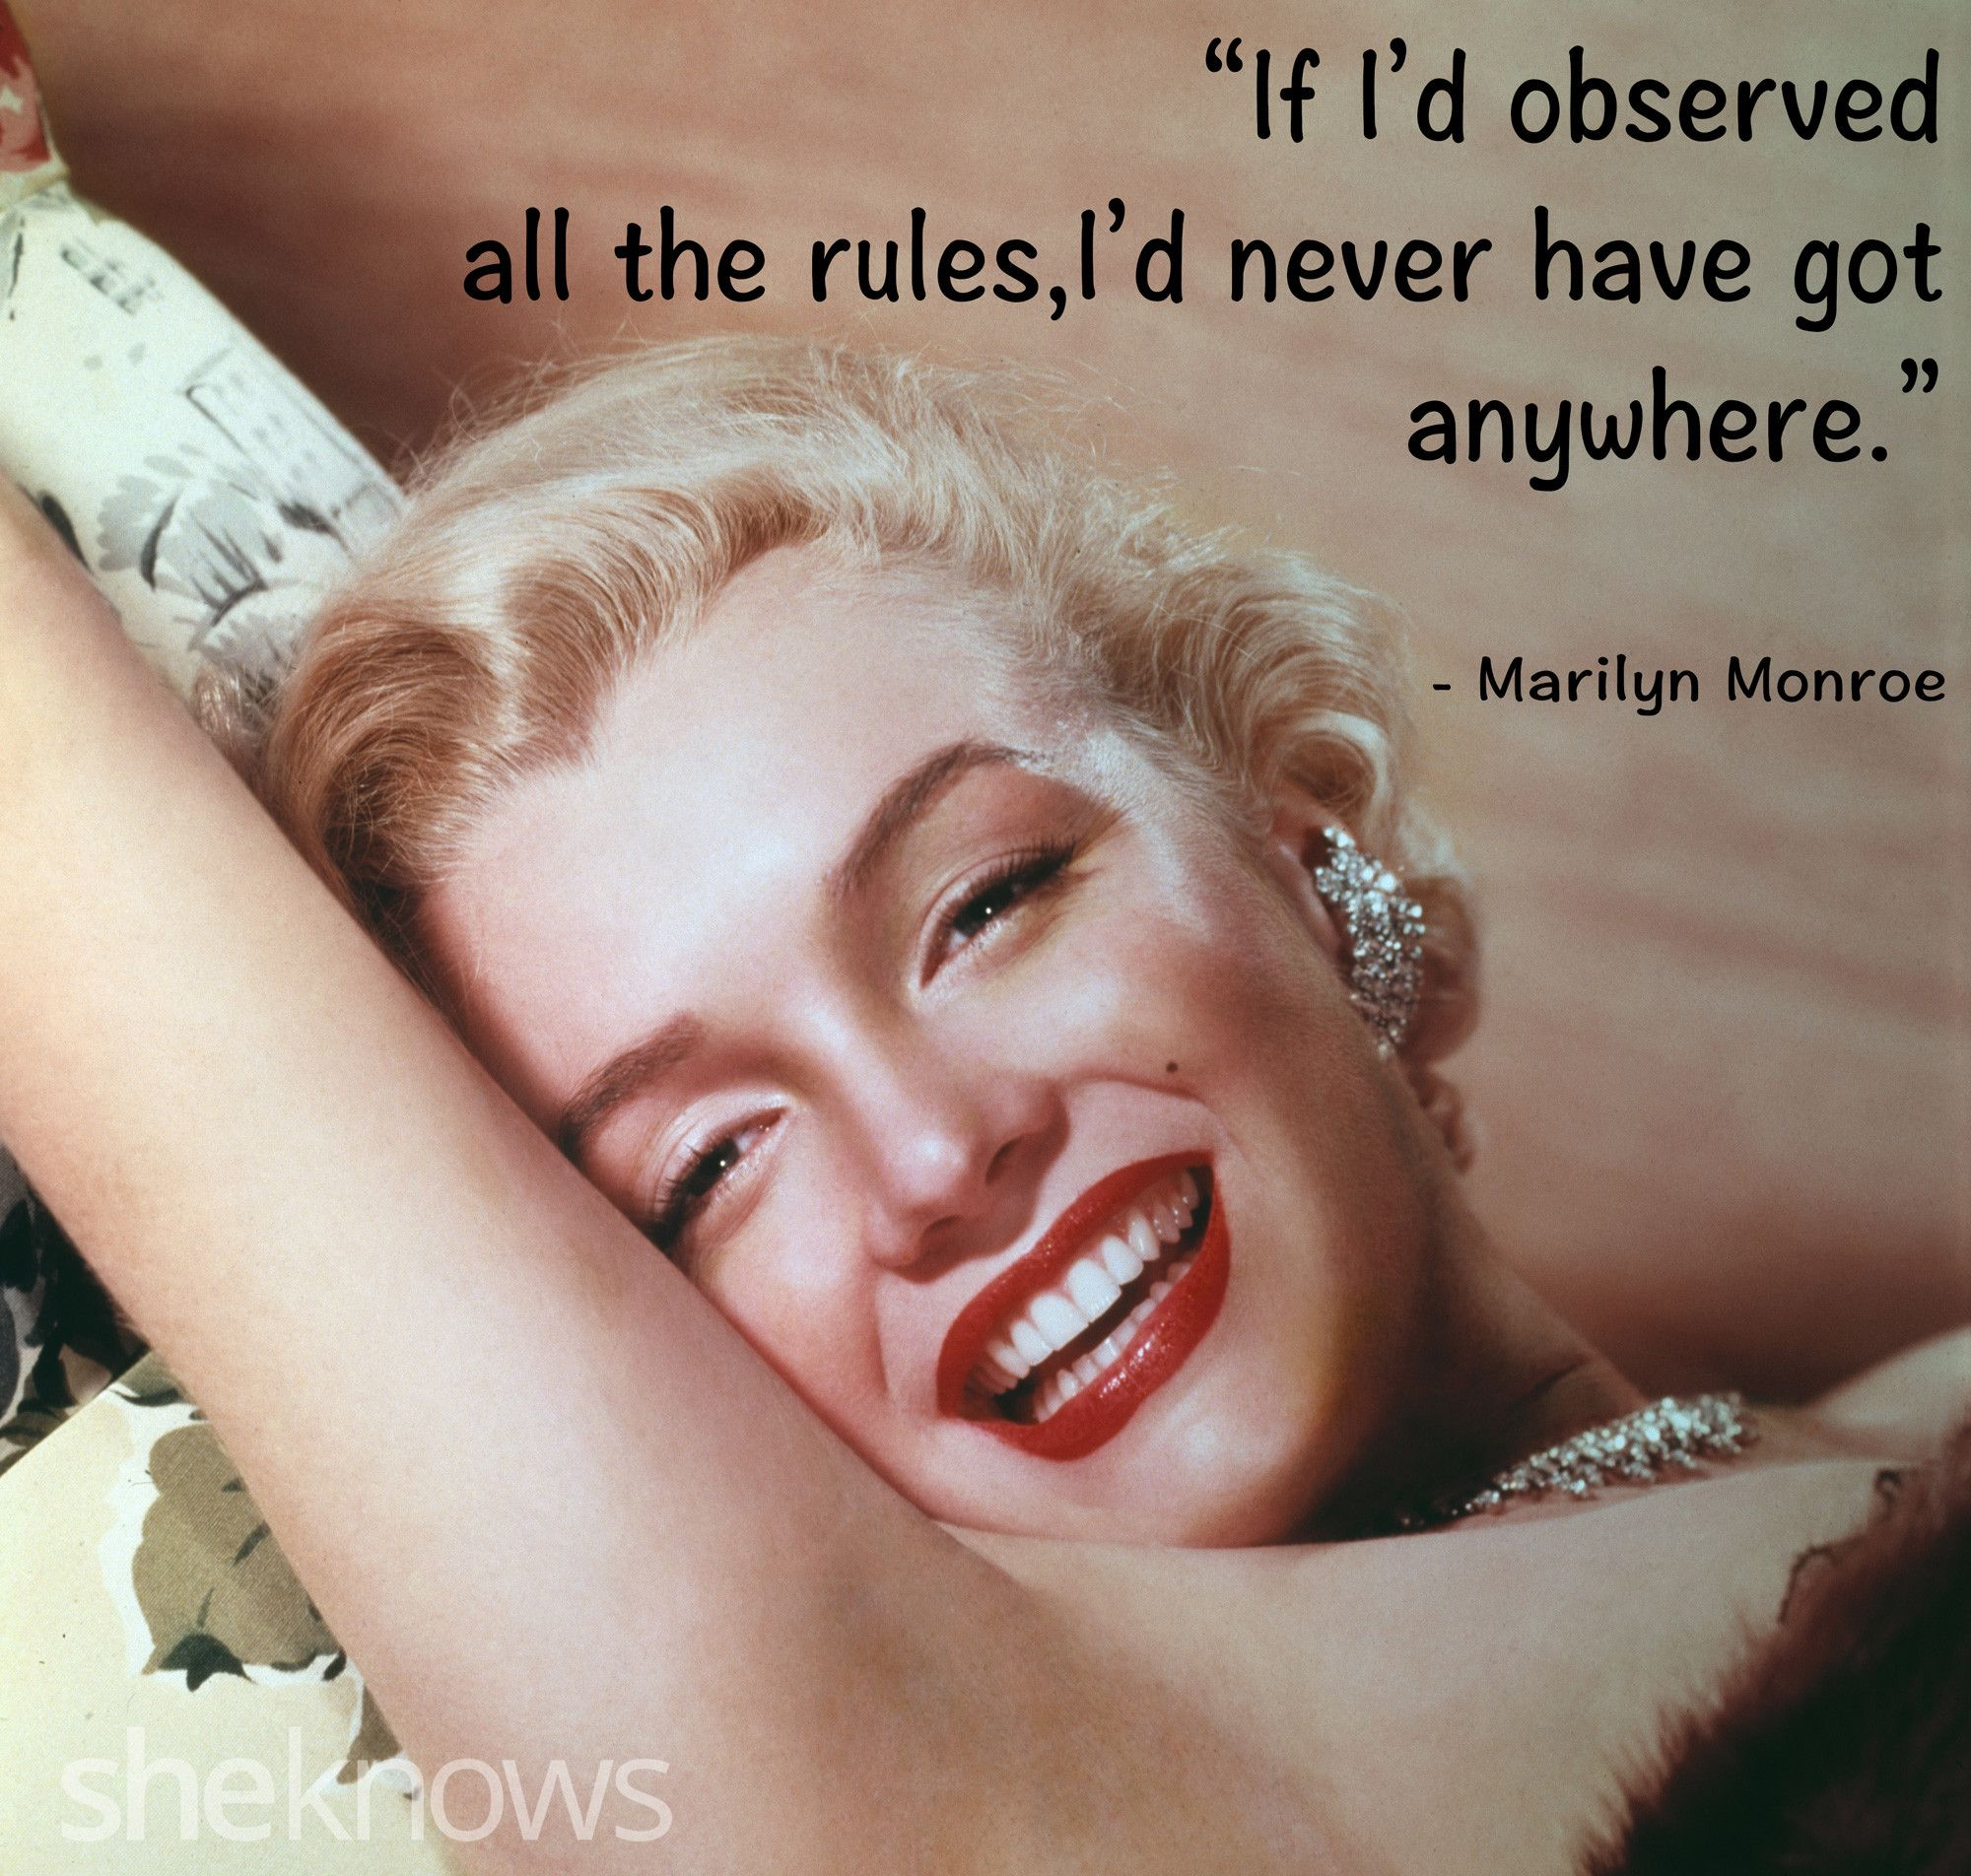 13 Marilyn Monroe Quotes That Are Still Relevant Today